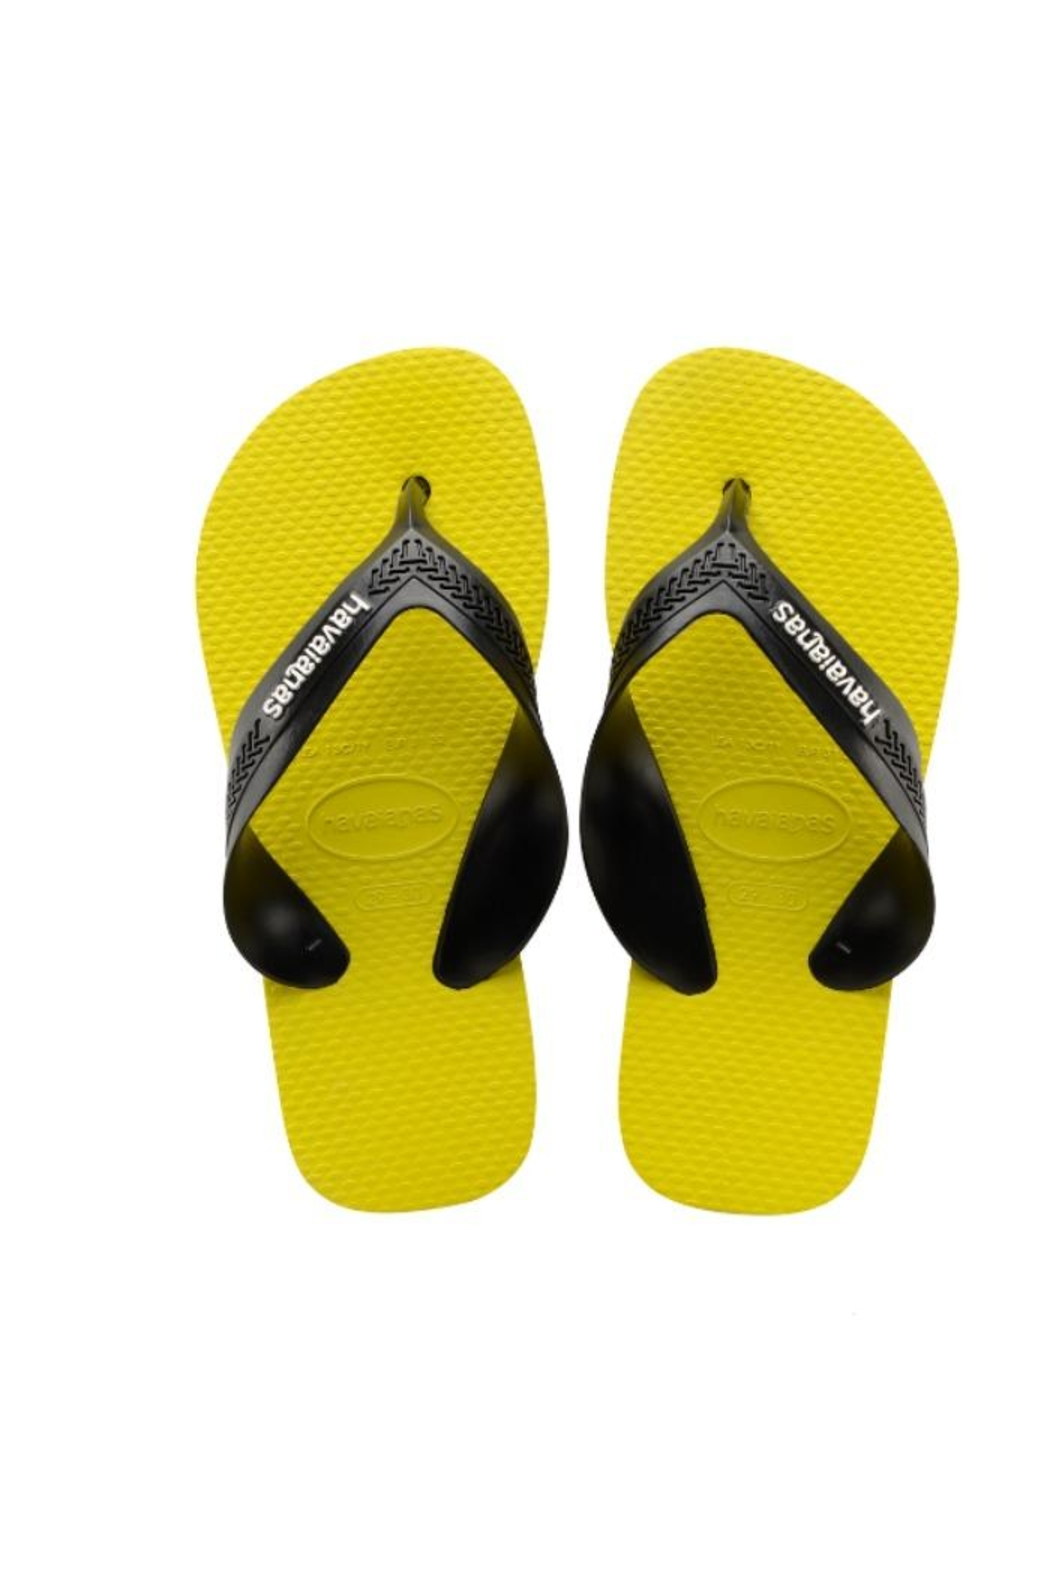 7e85db0561c3d2 Havaianas Max Sandal from Tennessee by Lori s Family Footwear ...